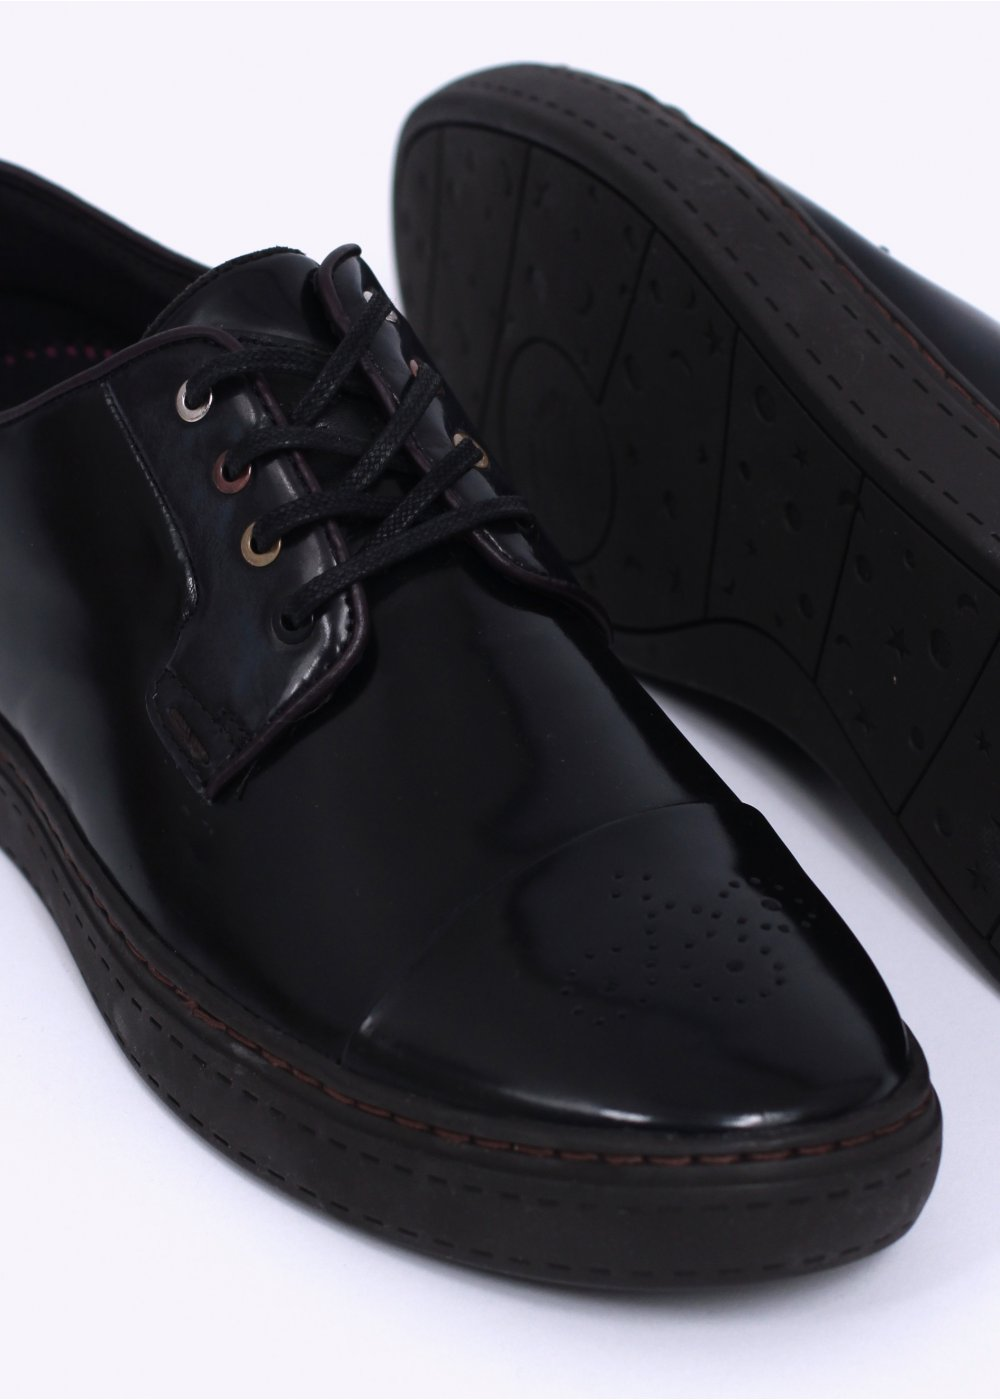 paul smith minster shoes black